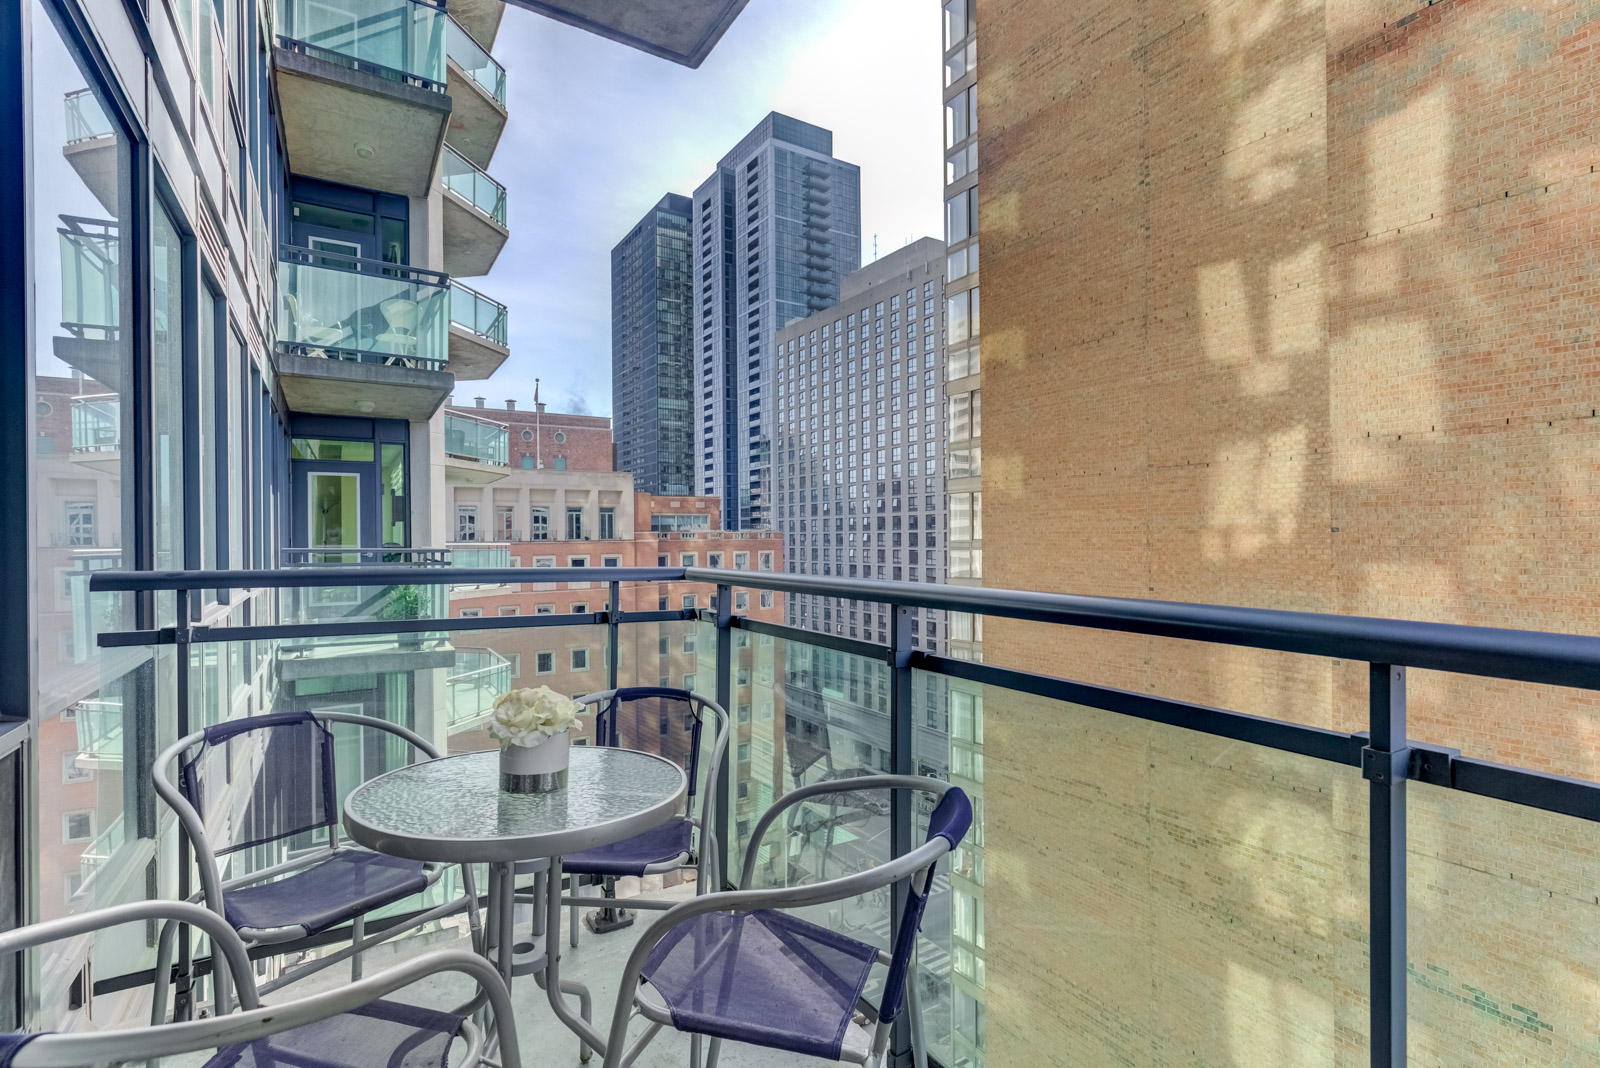 300 Bloor St E Unit 1809 balcony with round table surrounded by 4 chairs overlooking buildings along Rosedale Valley.